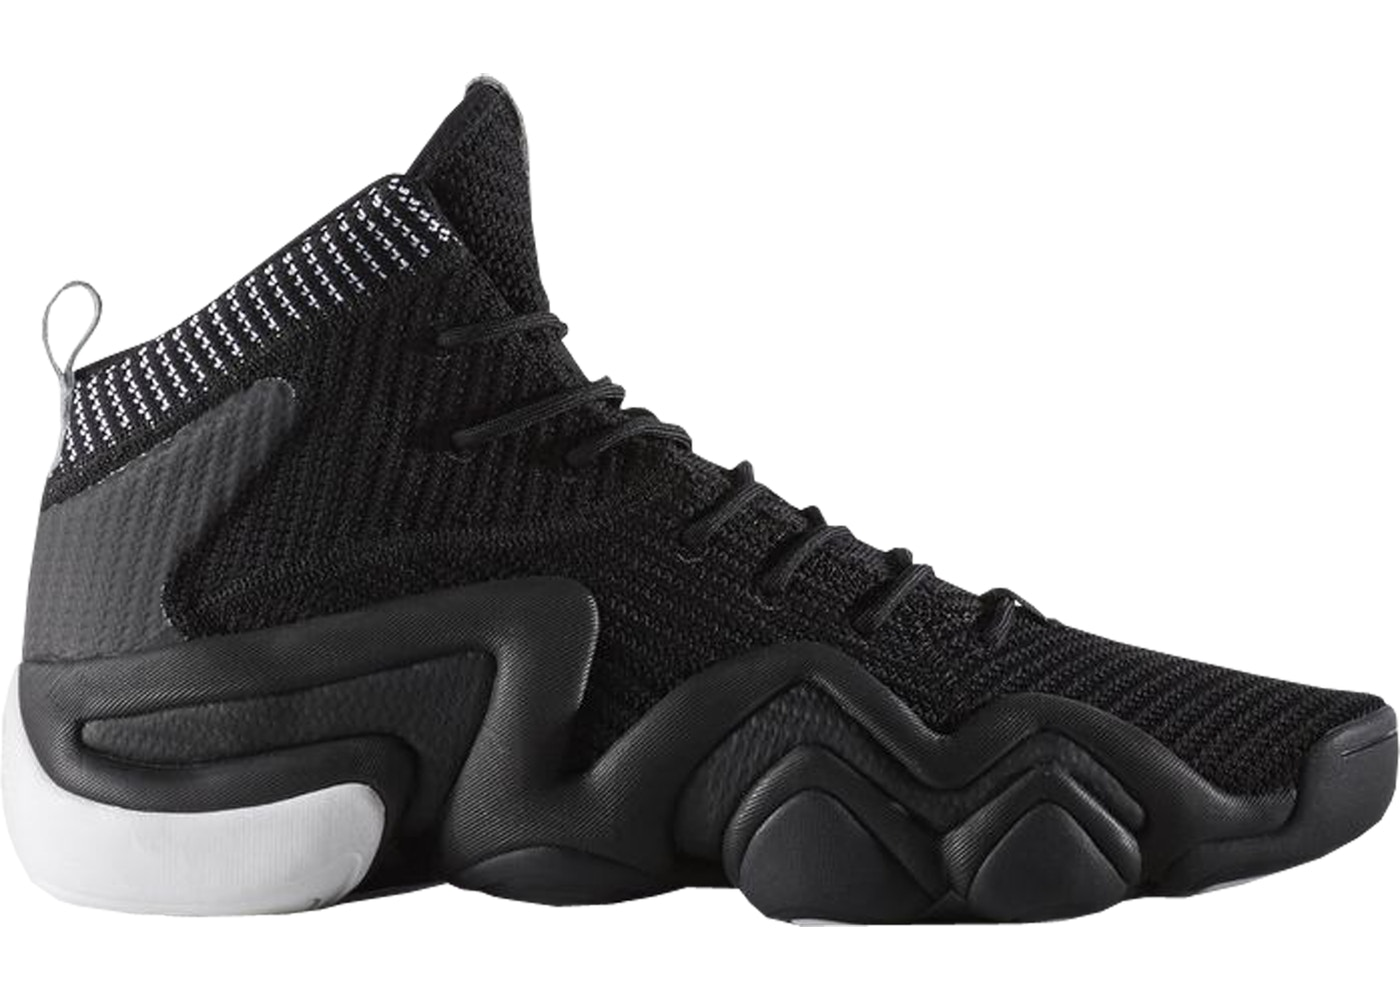 super popular 84291 01c6a adidas Crazy 8 Adv Black - BY3602